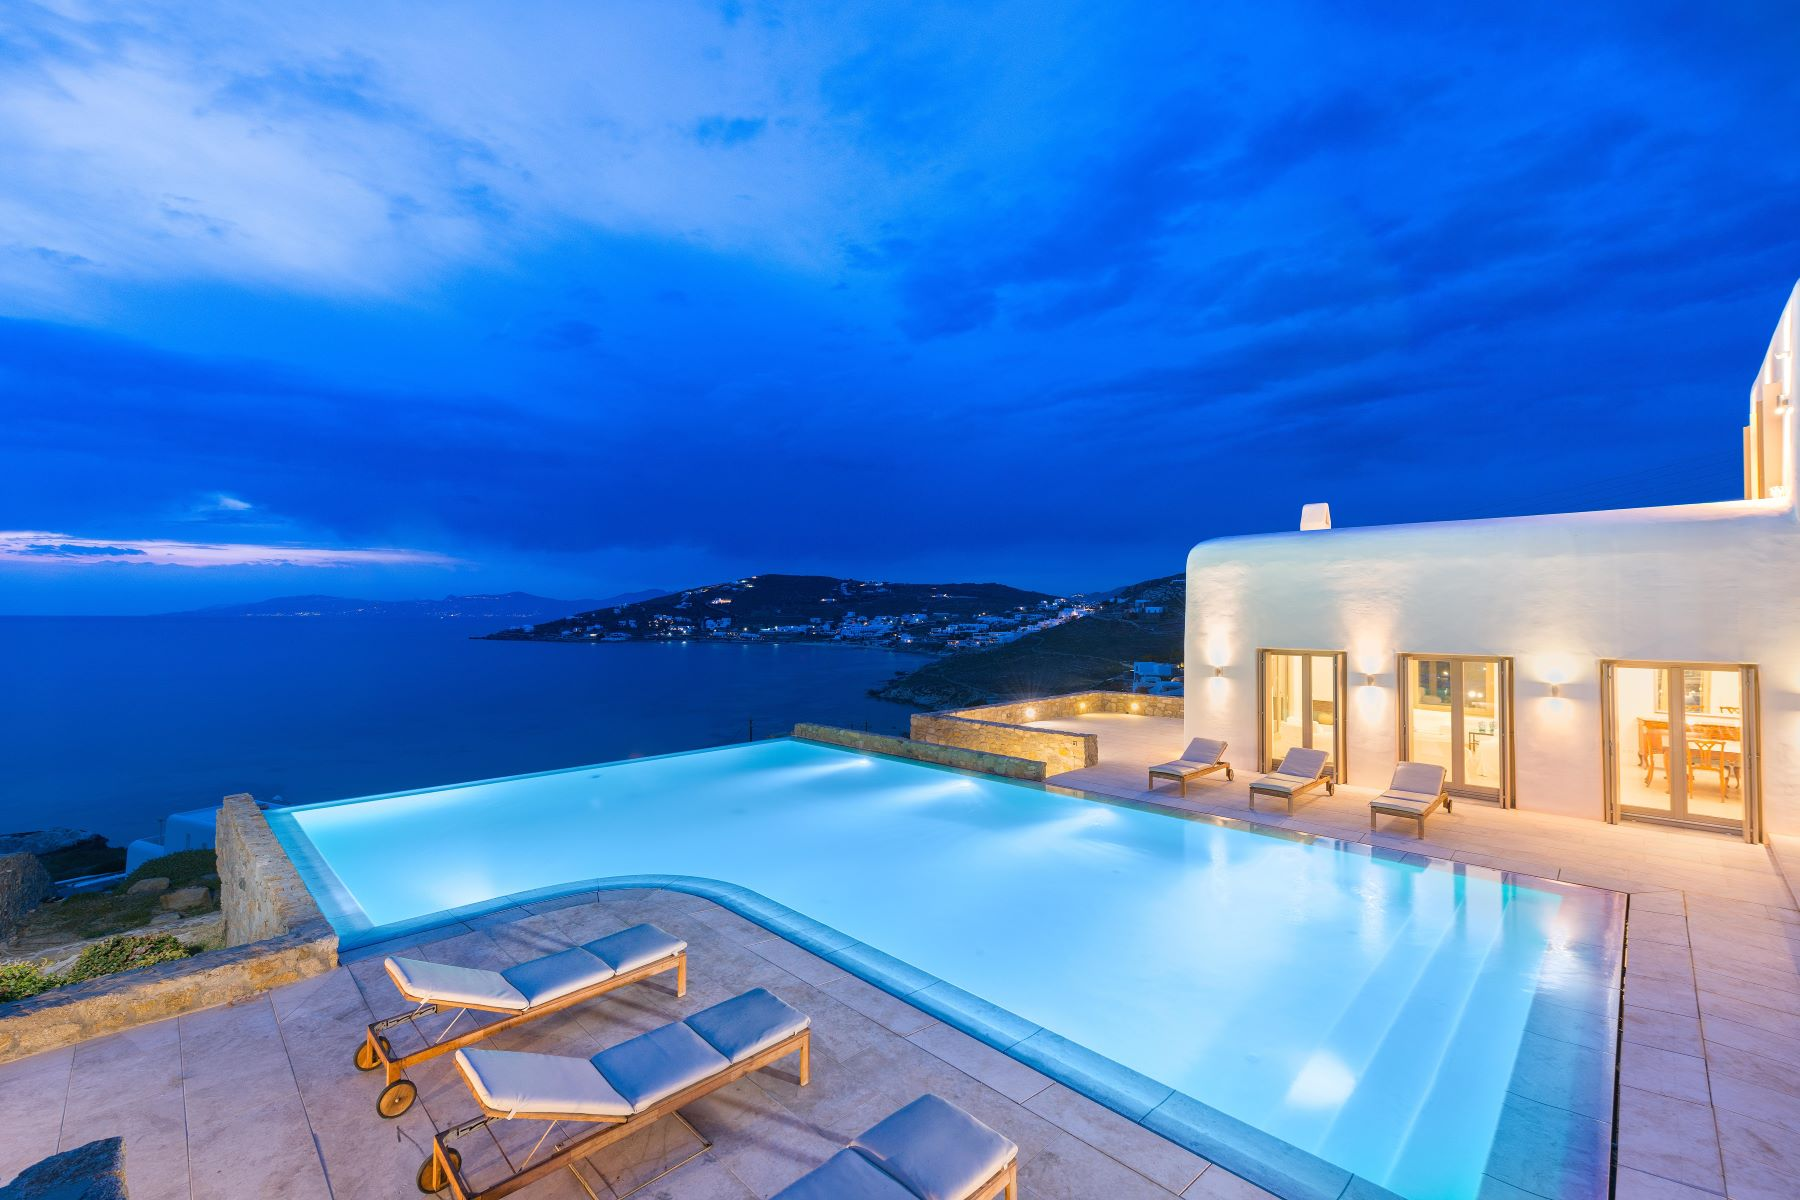 Single Family Home for Sale at Seashore Theory Mykonos, Southern Aegean, Greece